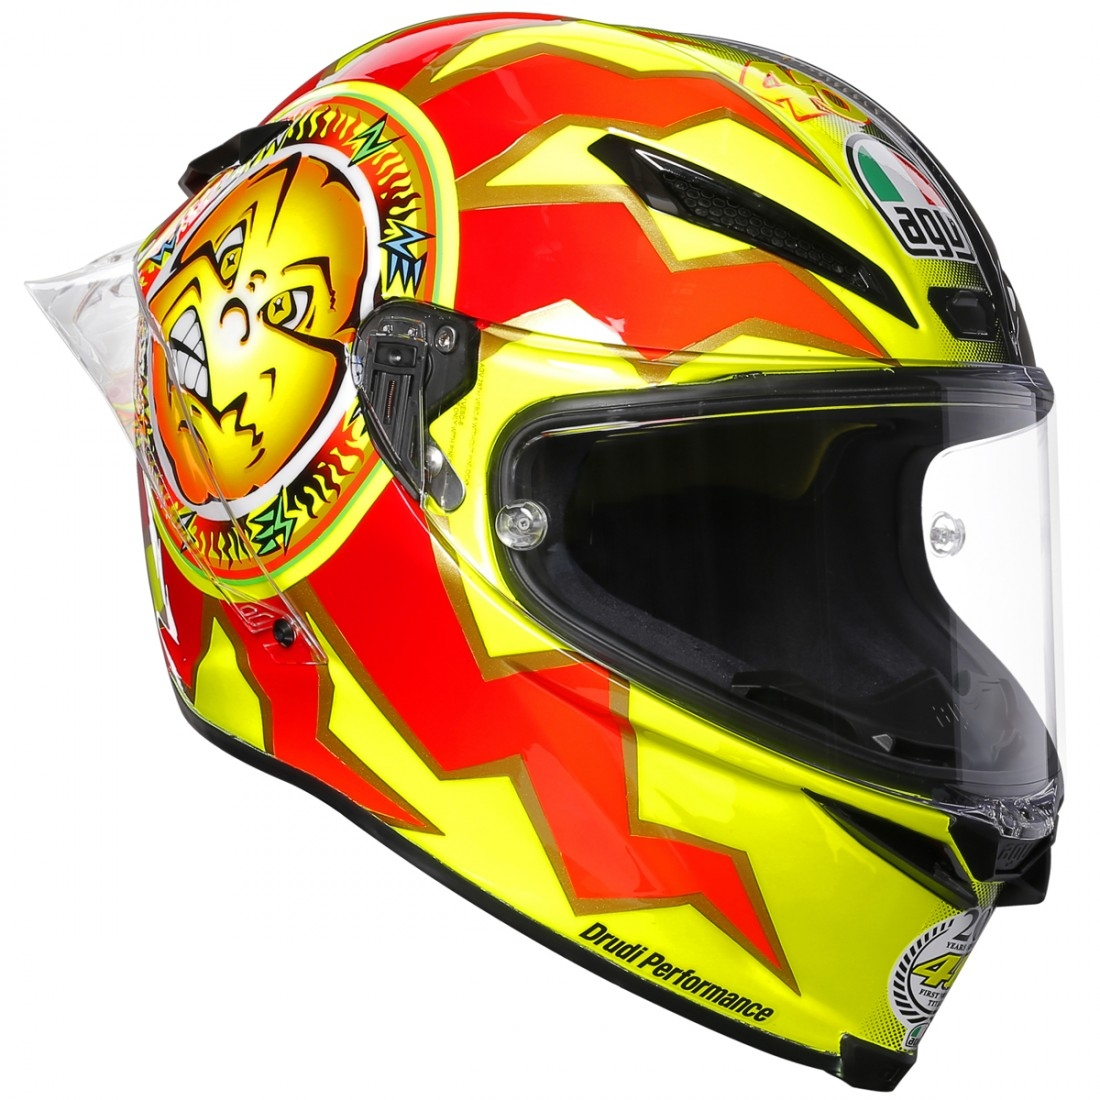 agv pista gp r rossi 20 years limited edition helmet motocard. Black Bedroom Furniture Sets. Home Design Ideas